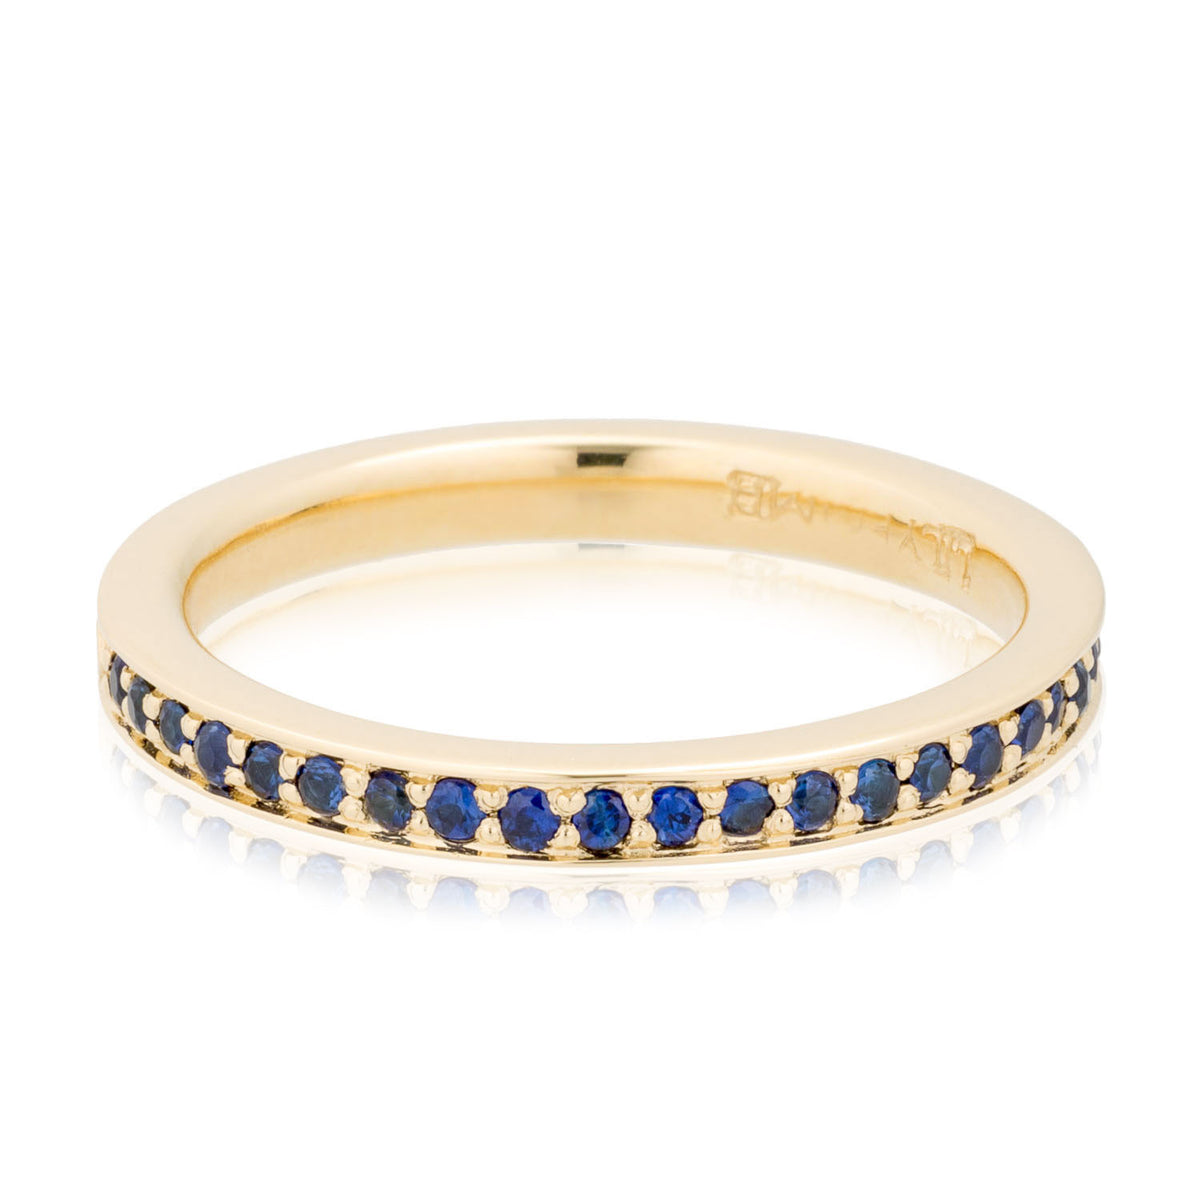 Size 5.75 - 14K Yellow Gold Blue Sapphire Pavé Wedding Band